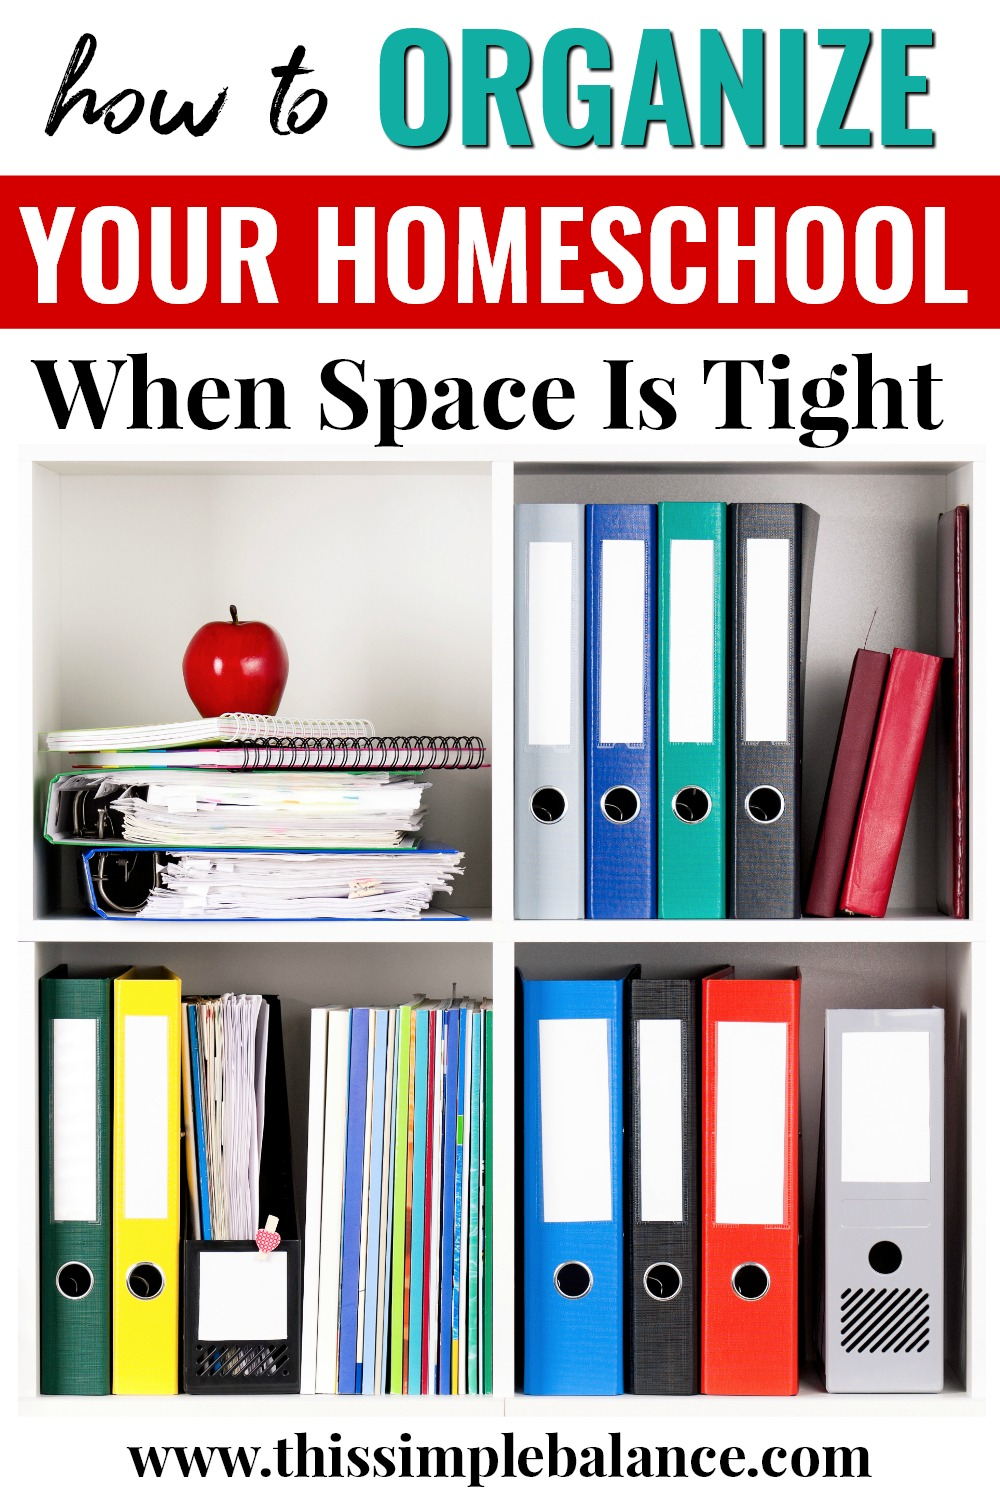 Homeschool Organization in a Small Space: how to make it work when space is tight.